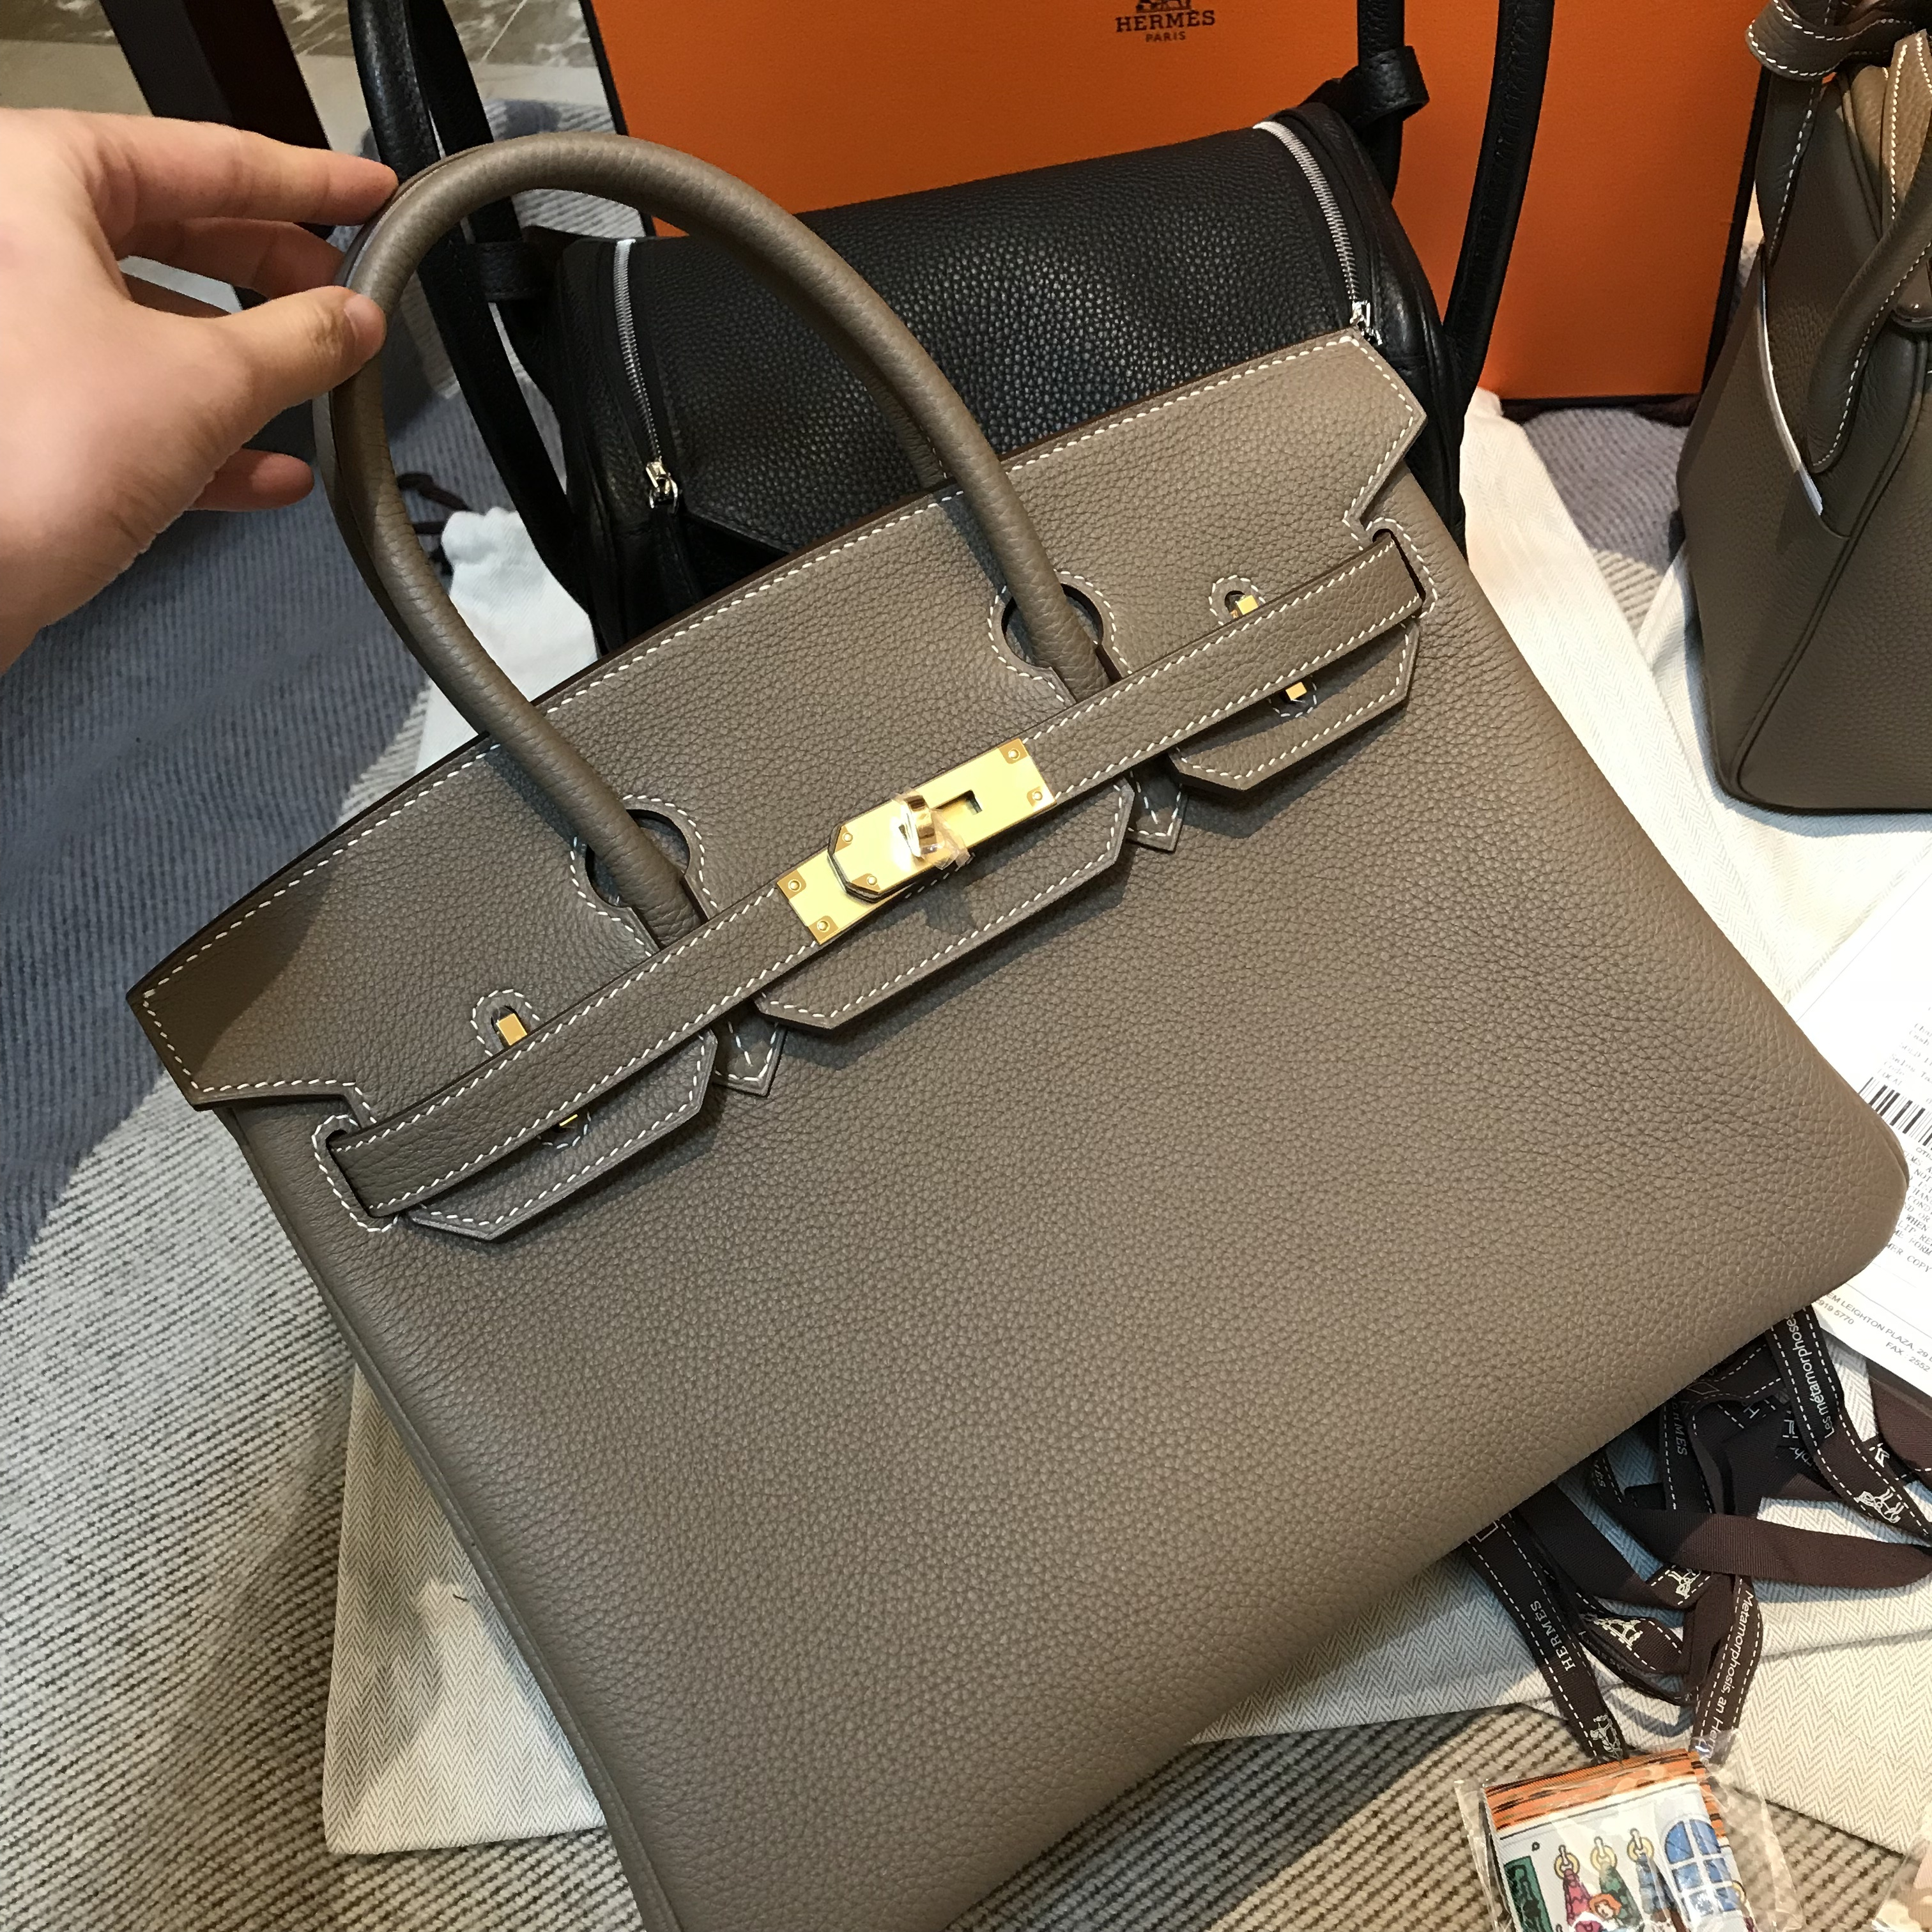 ... Hermes Birkin from her. It s exactly the same as my Lindy I bought in  France last year. Price of their bags is higher than that of other sellers f4ebb8ed44906